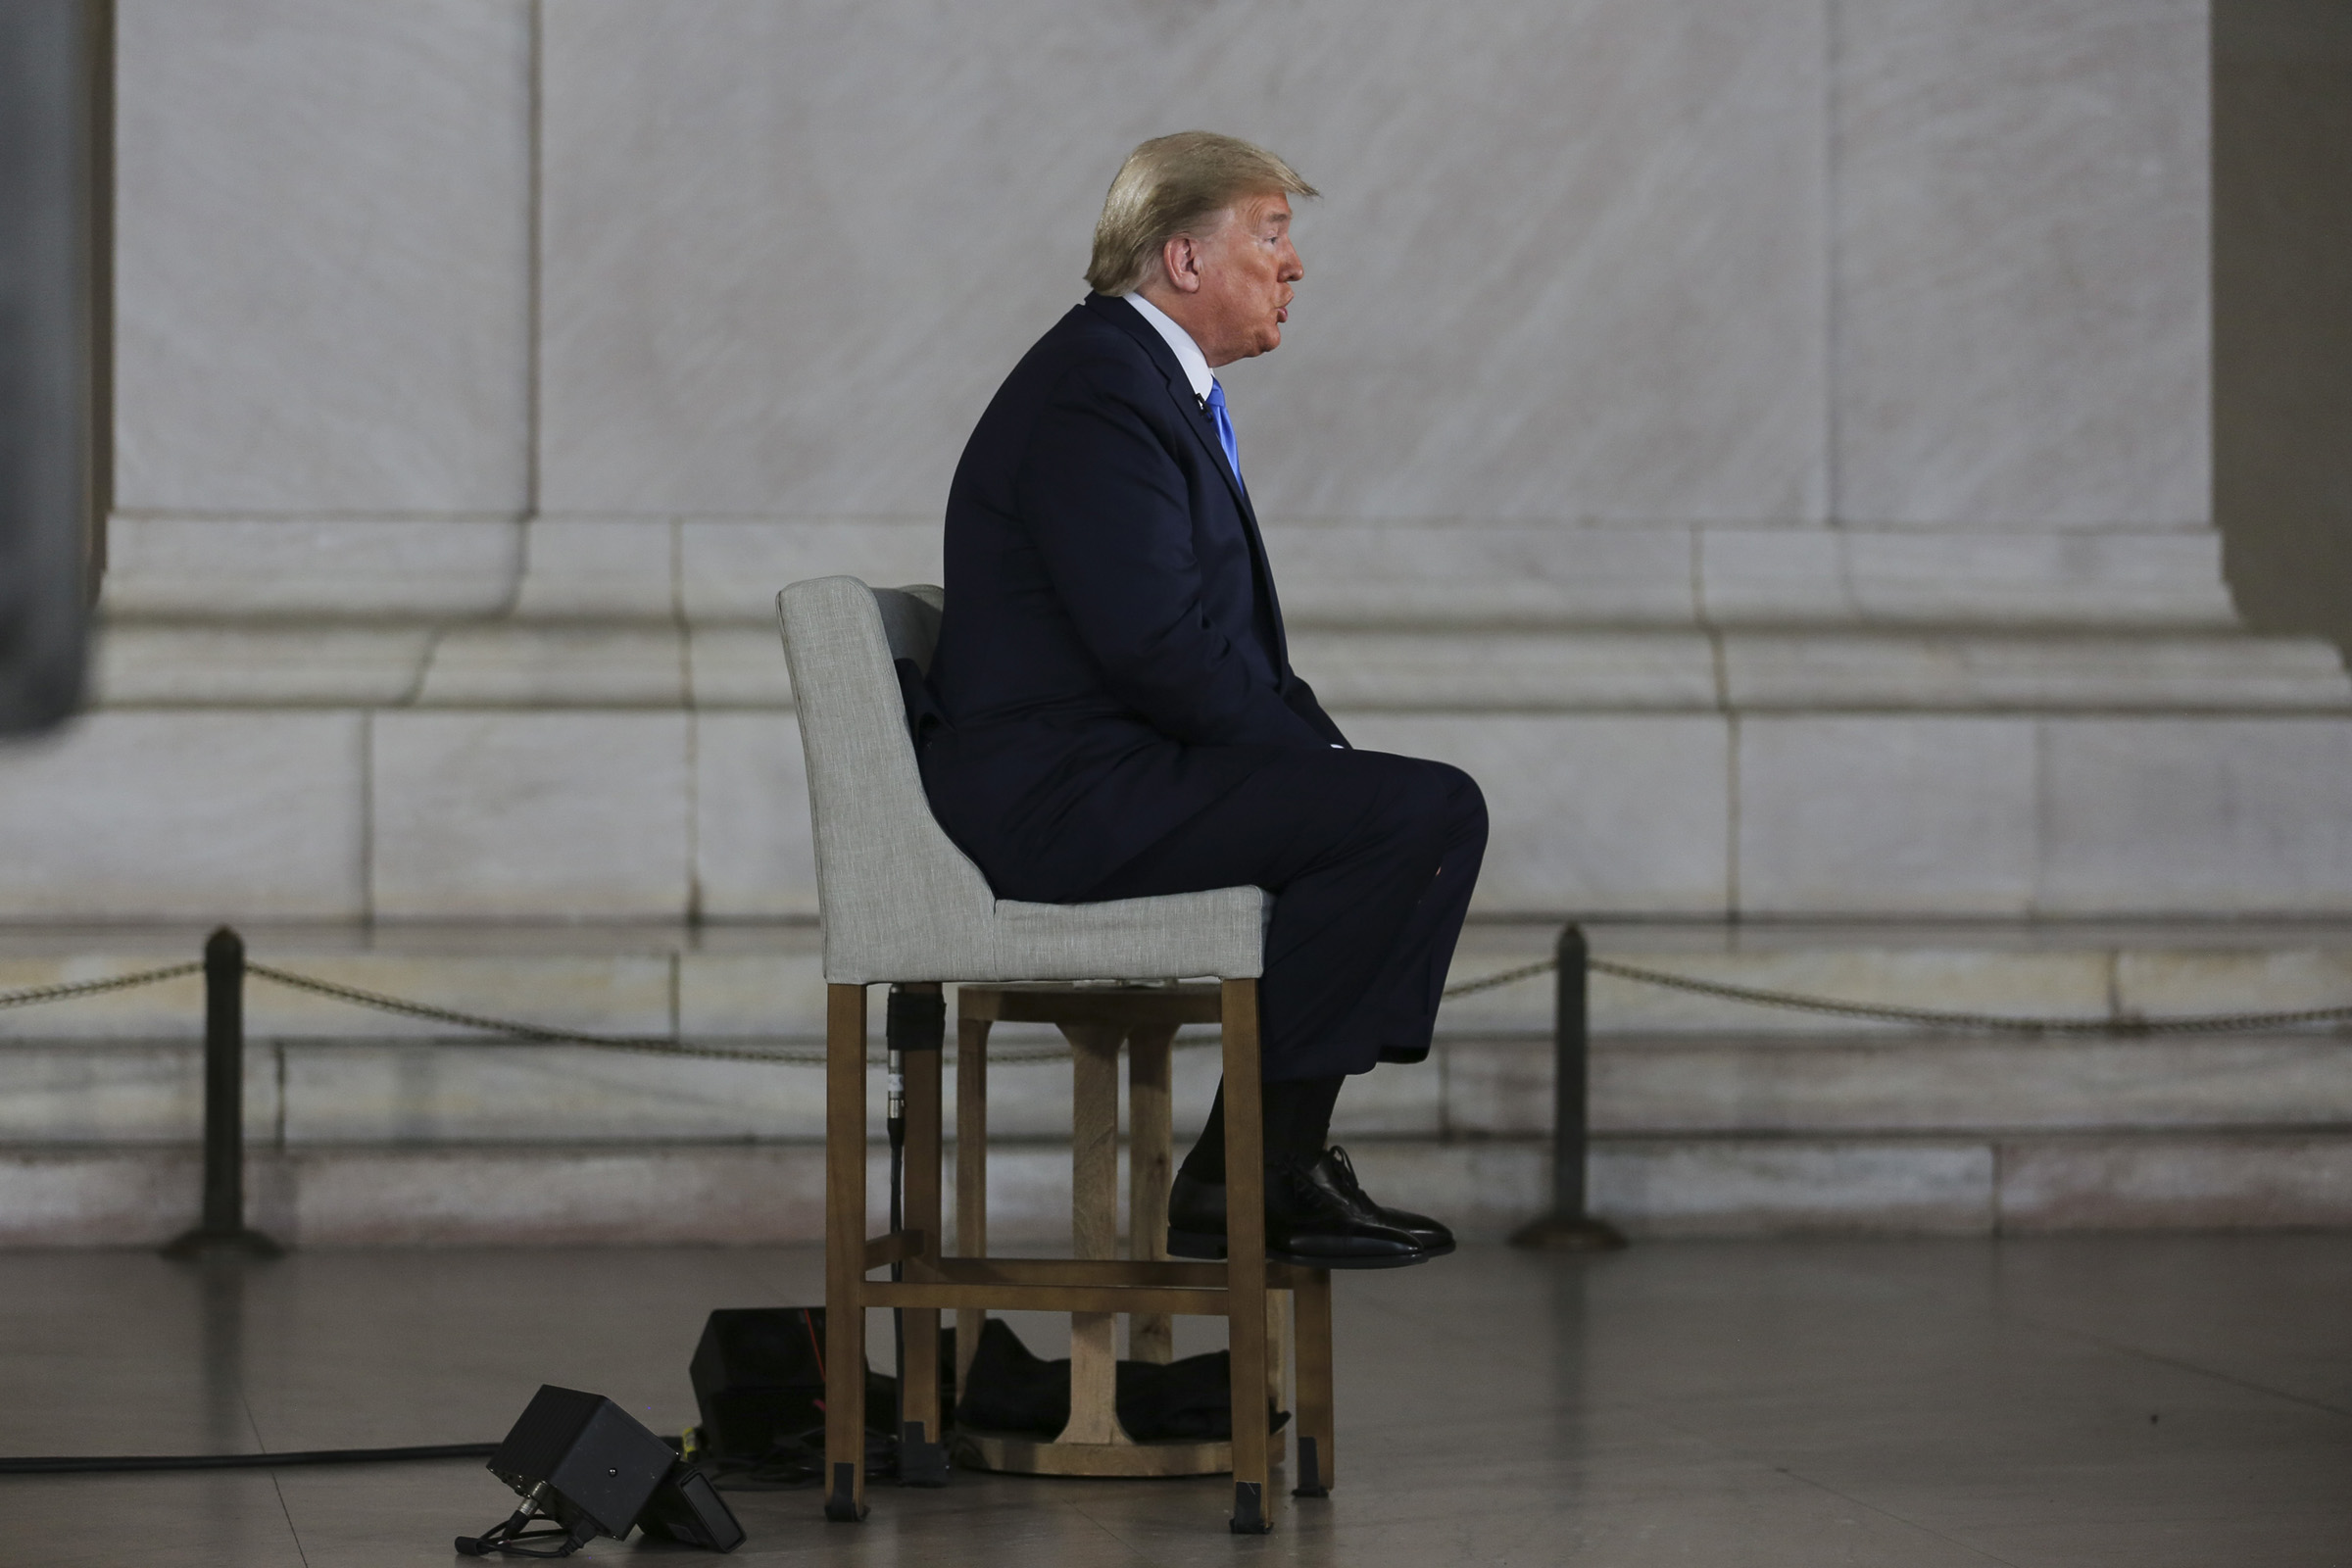 U.S. President Donald Trump speaks during a Fox News town hall at the Lincoln Memorial in Washington, D.C., on May 3, 2020.